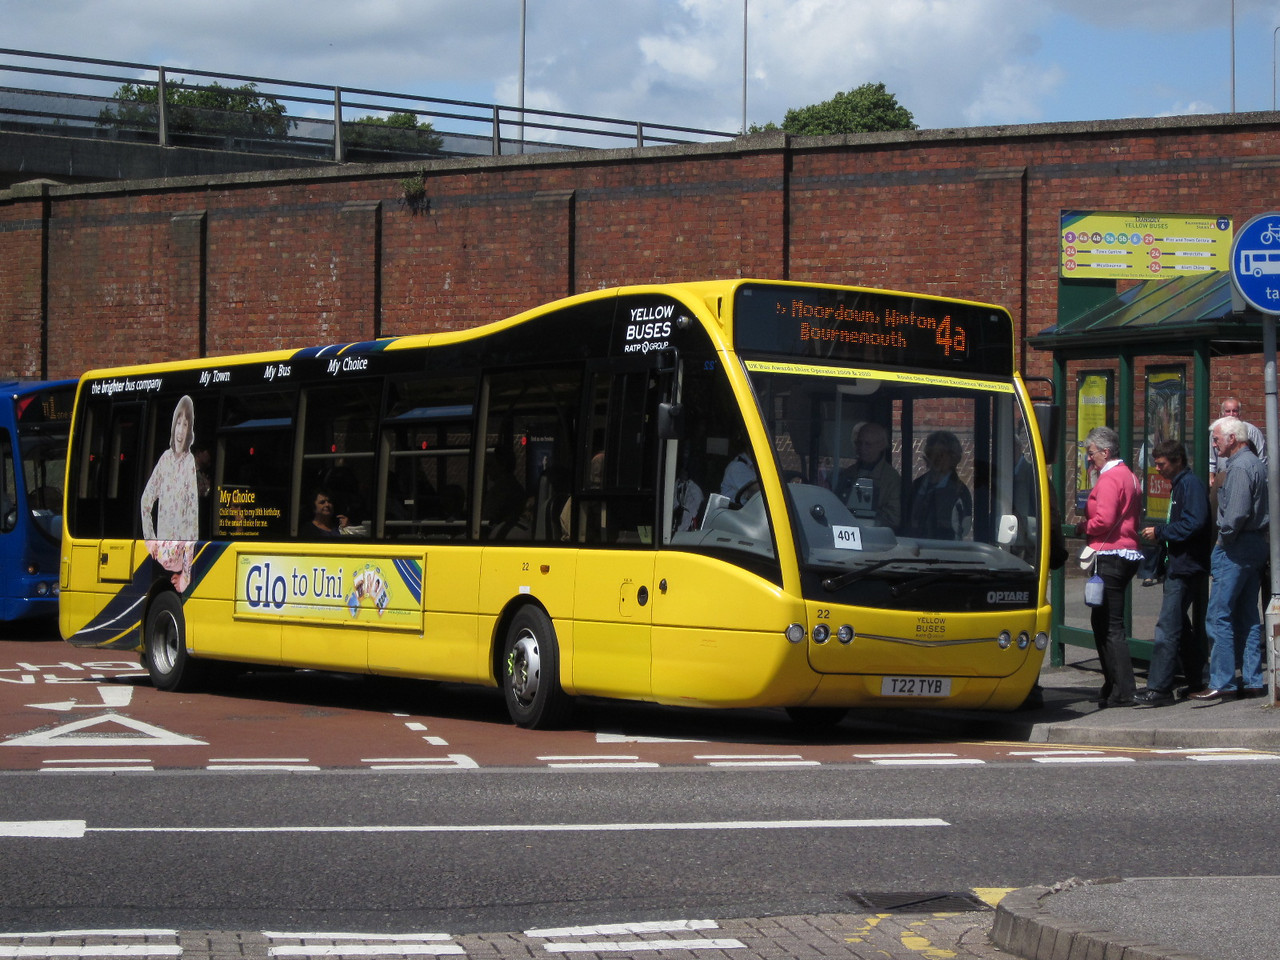 22, T22TYB, Yellow Buses, Bournemouth Travel Interchange